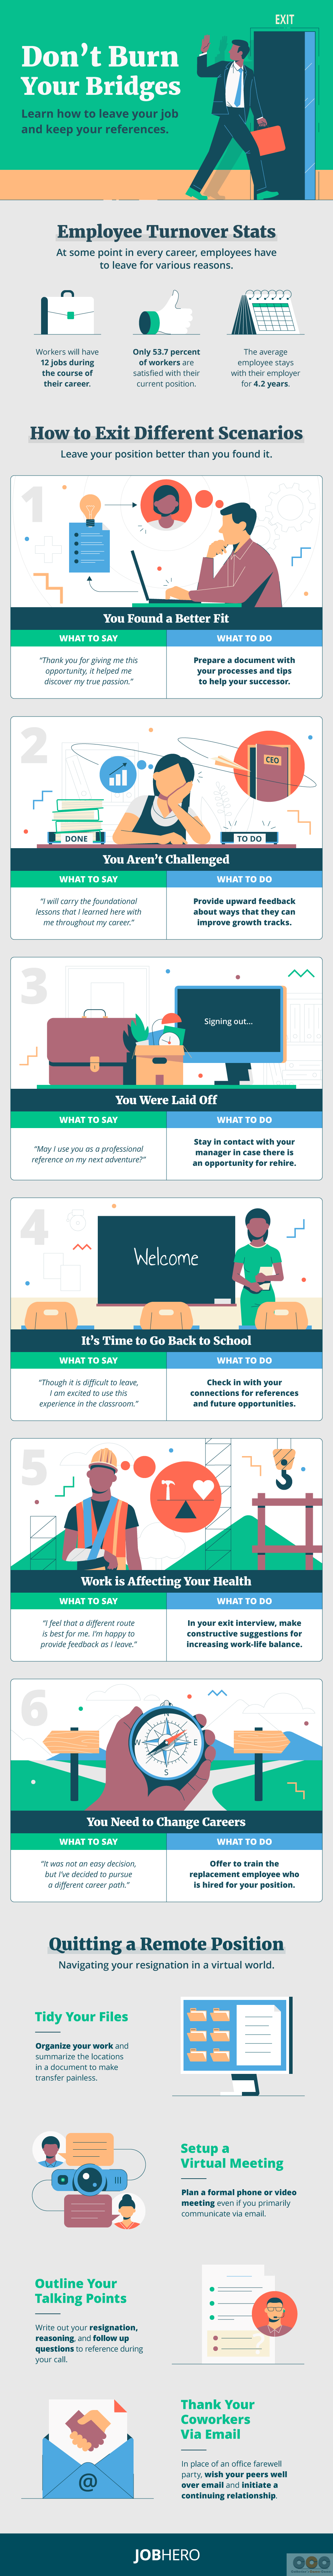 How to quit a job. 5 tips for doing it right._Infographic